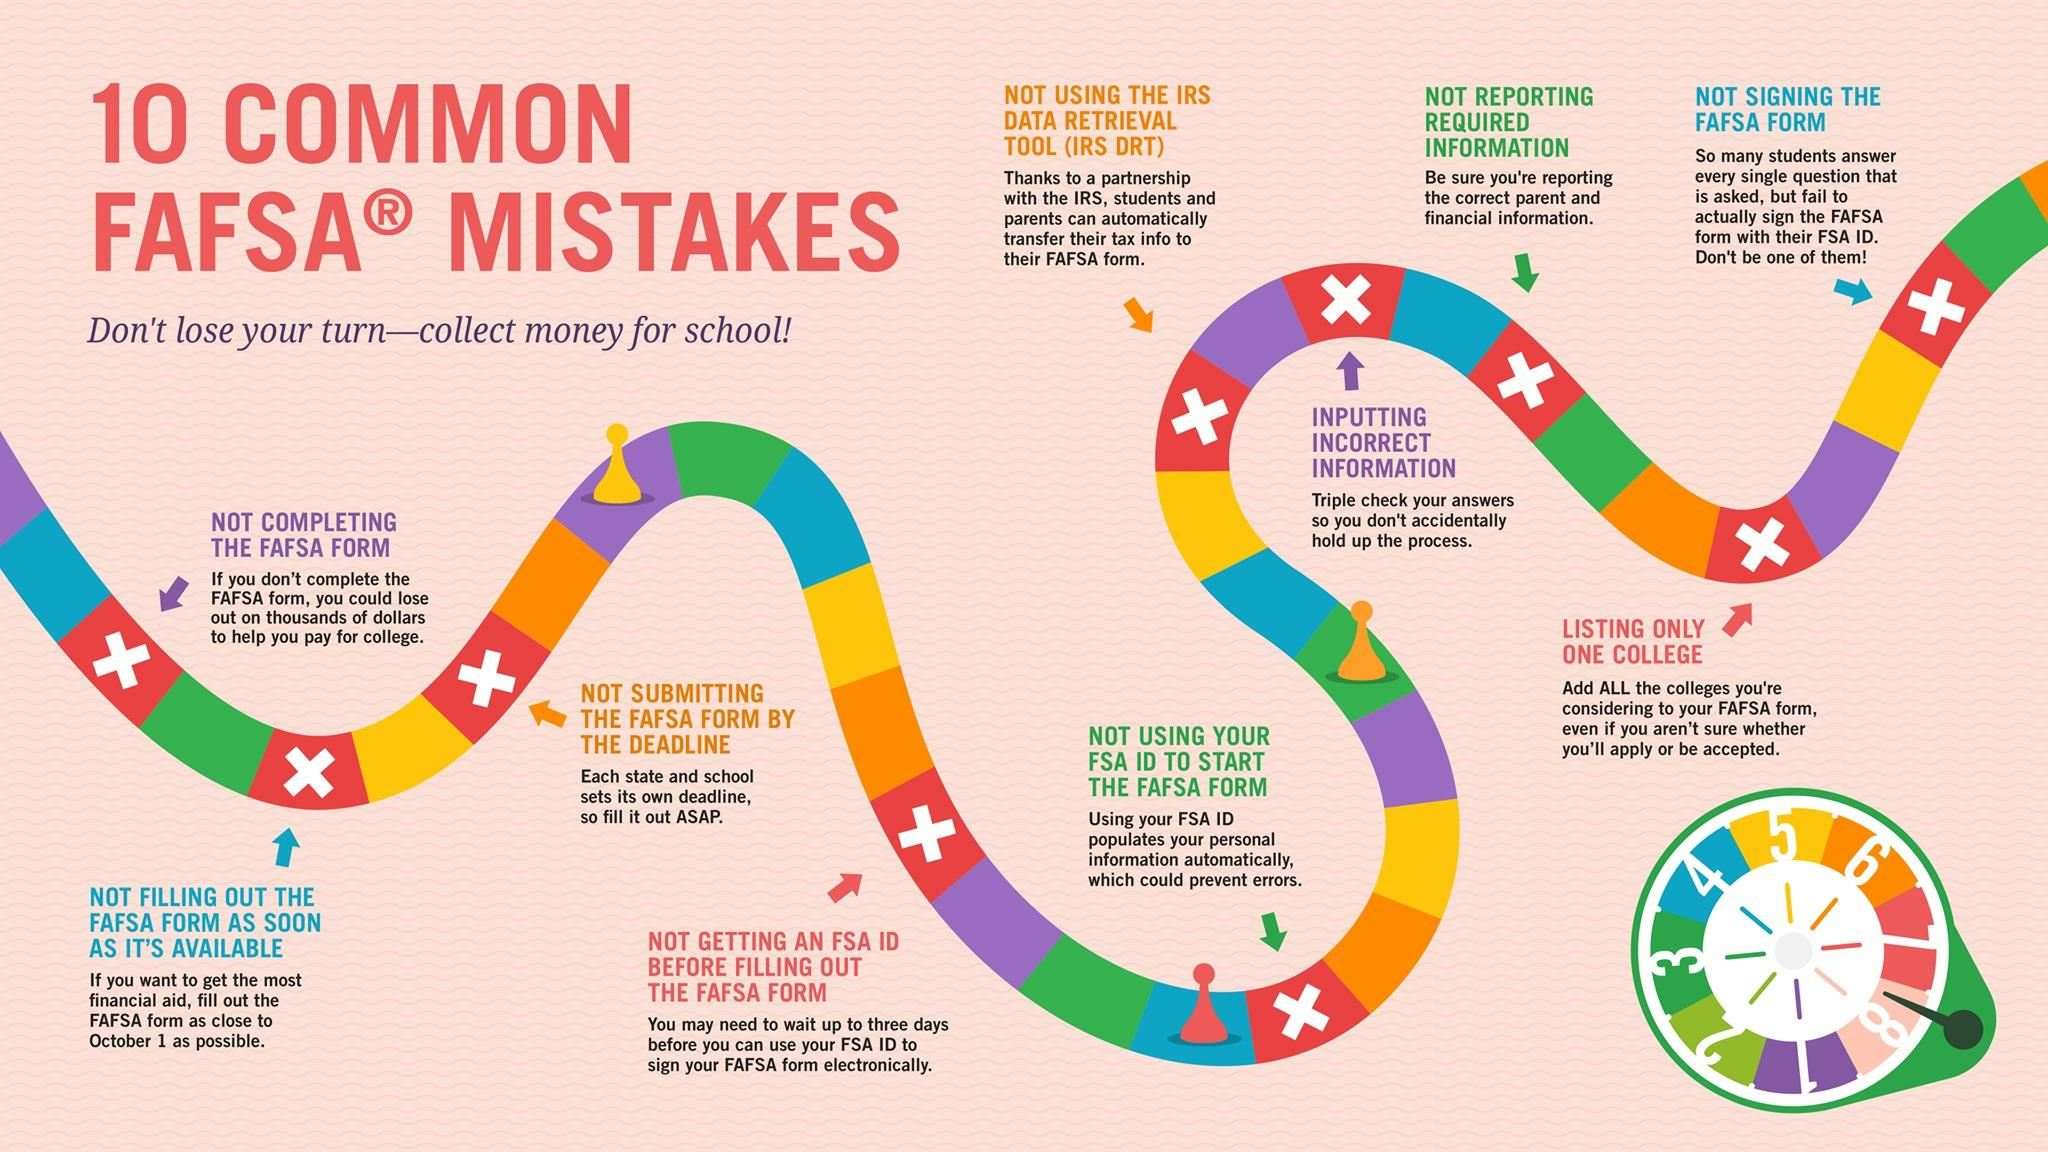 /cms/lib/AZ50000423/Centricity/Domain/962/10 common FAFSA mistakes graphic